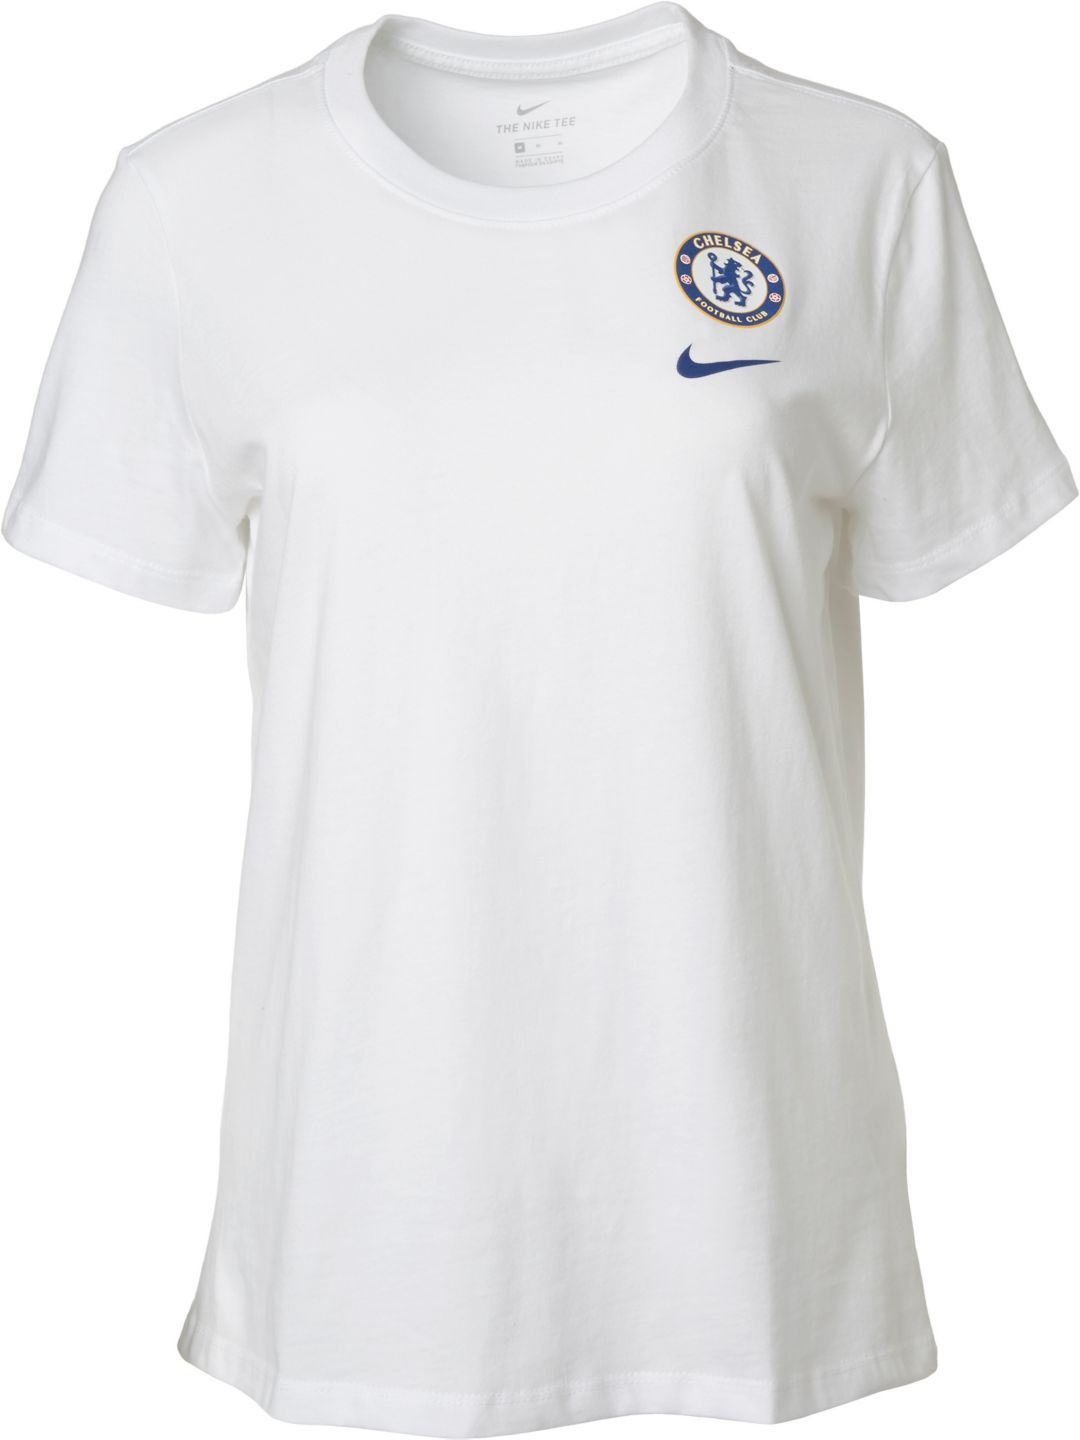 more photos 781d5 92a29 Nike Women's Chelsea FC '19 Crest White T-Shirt